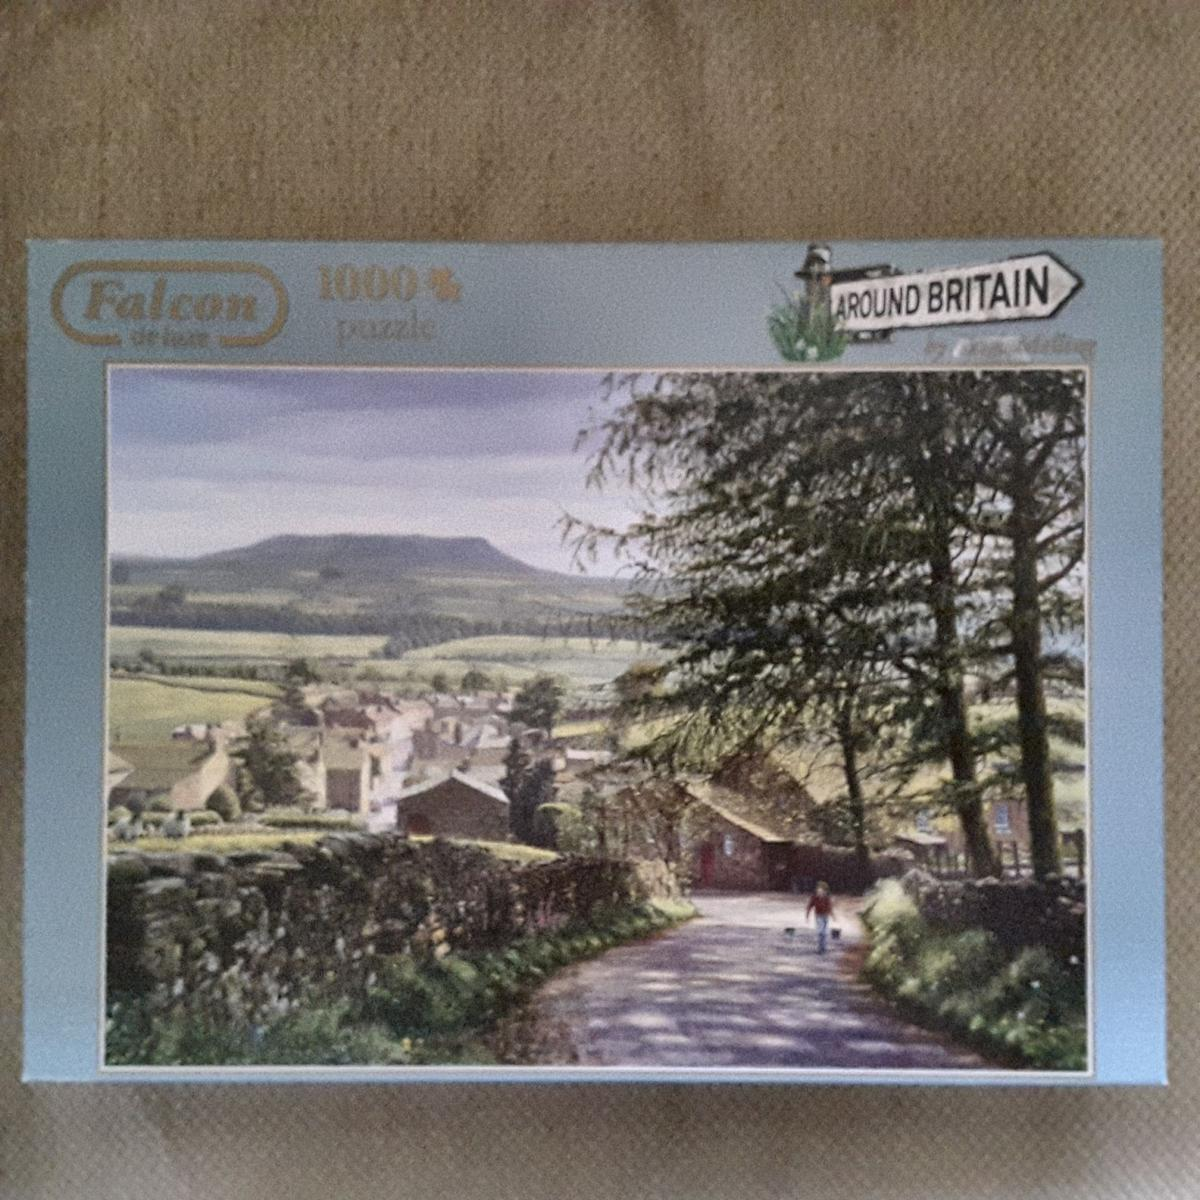 "Falcon DeLuxe 1000 piece Jigsaw Puzzles ""Around Britain"" series Take your pick. Collection from Walmley."